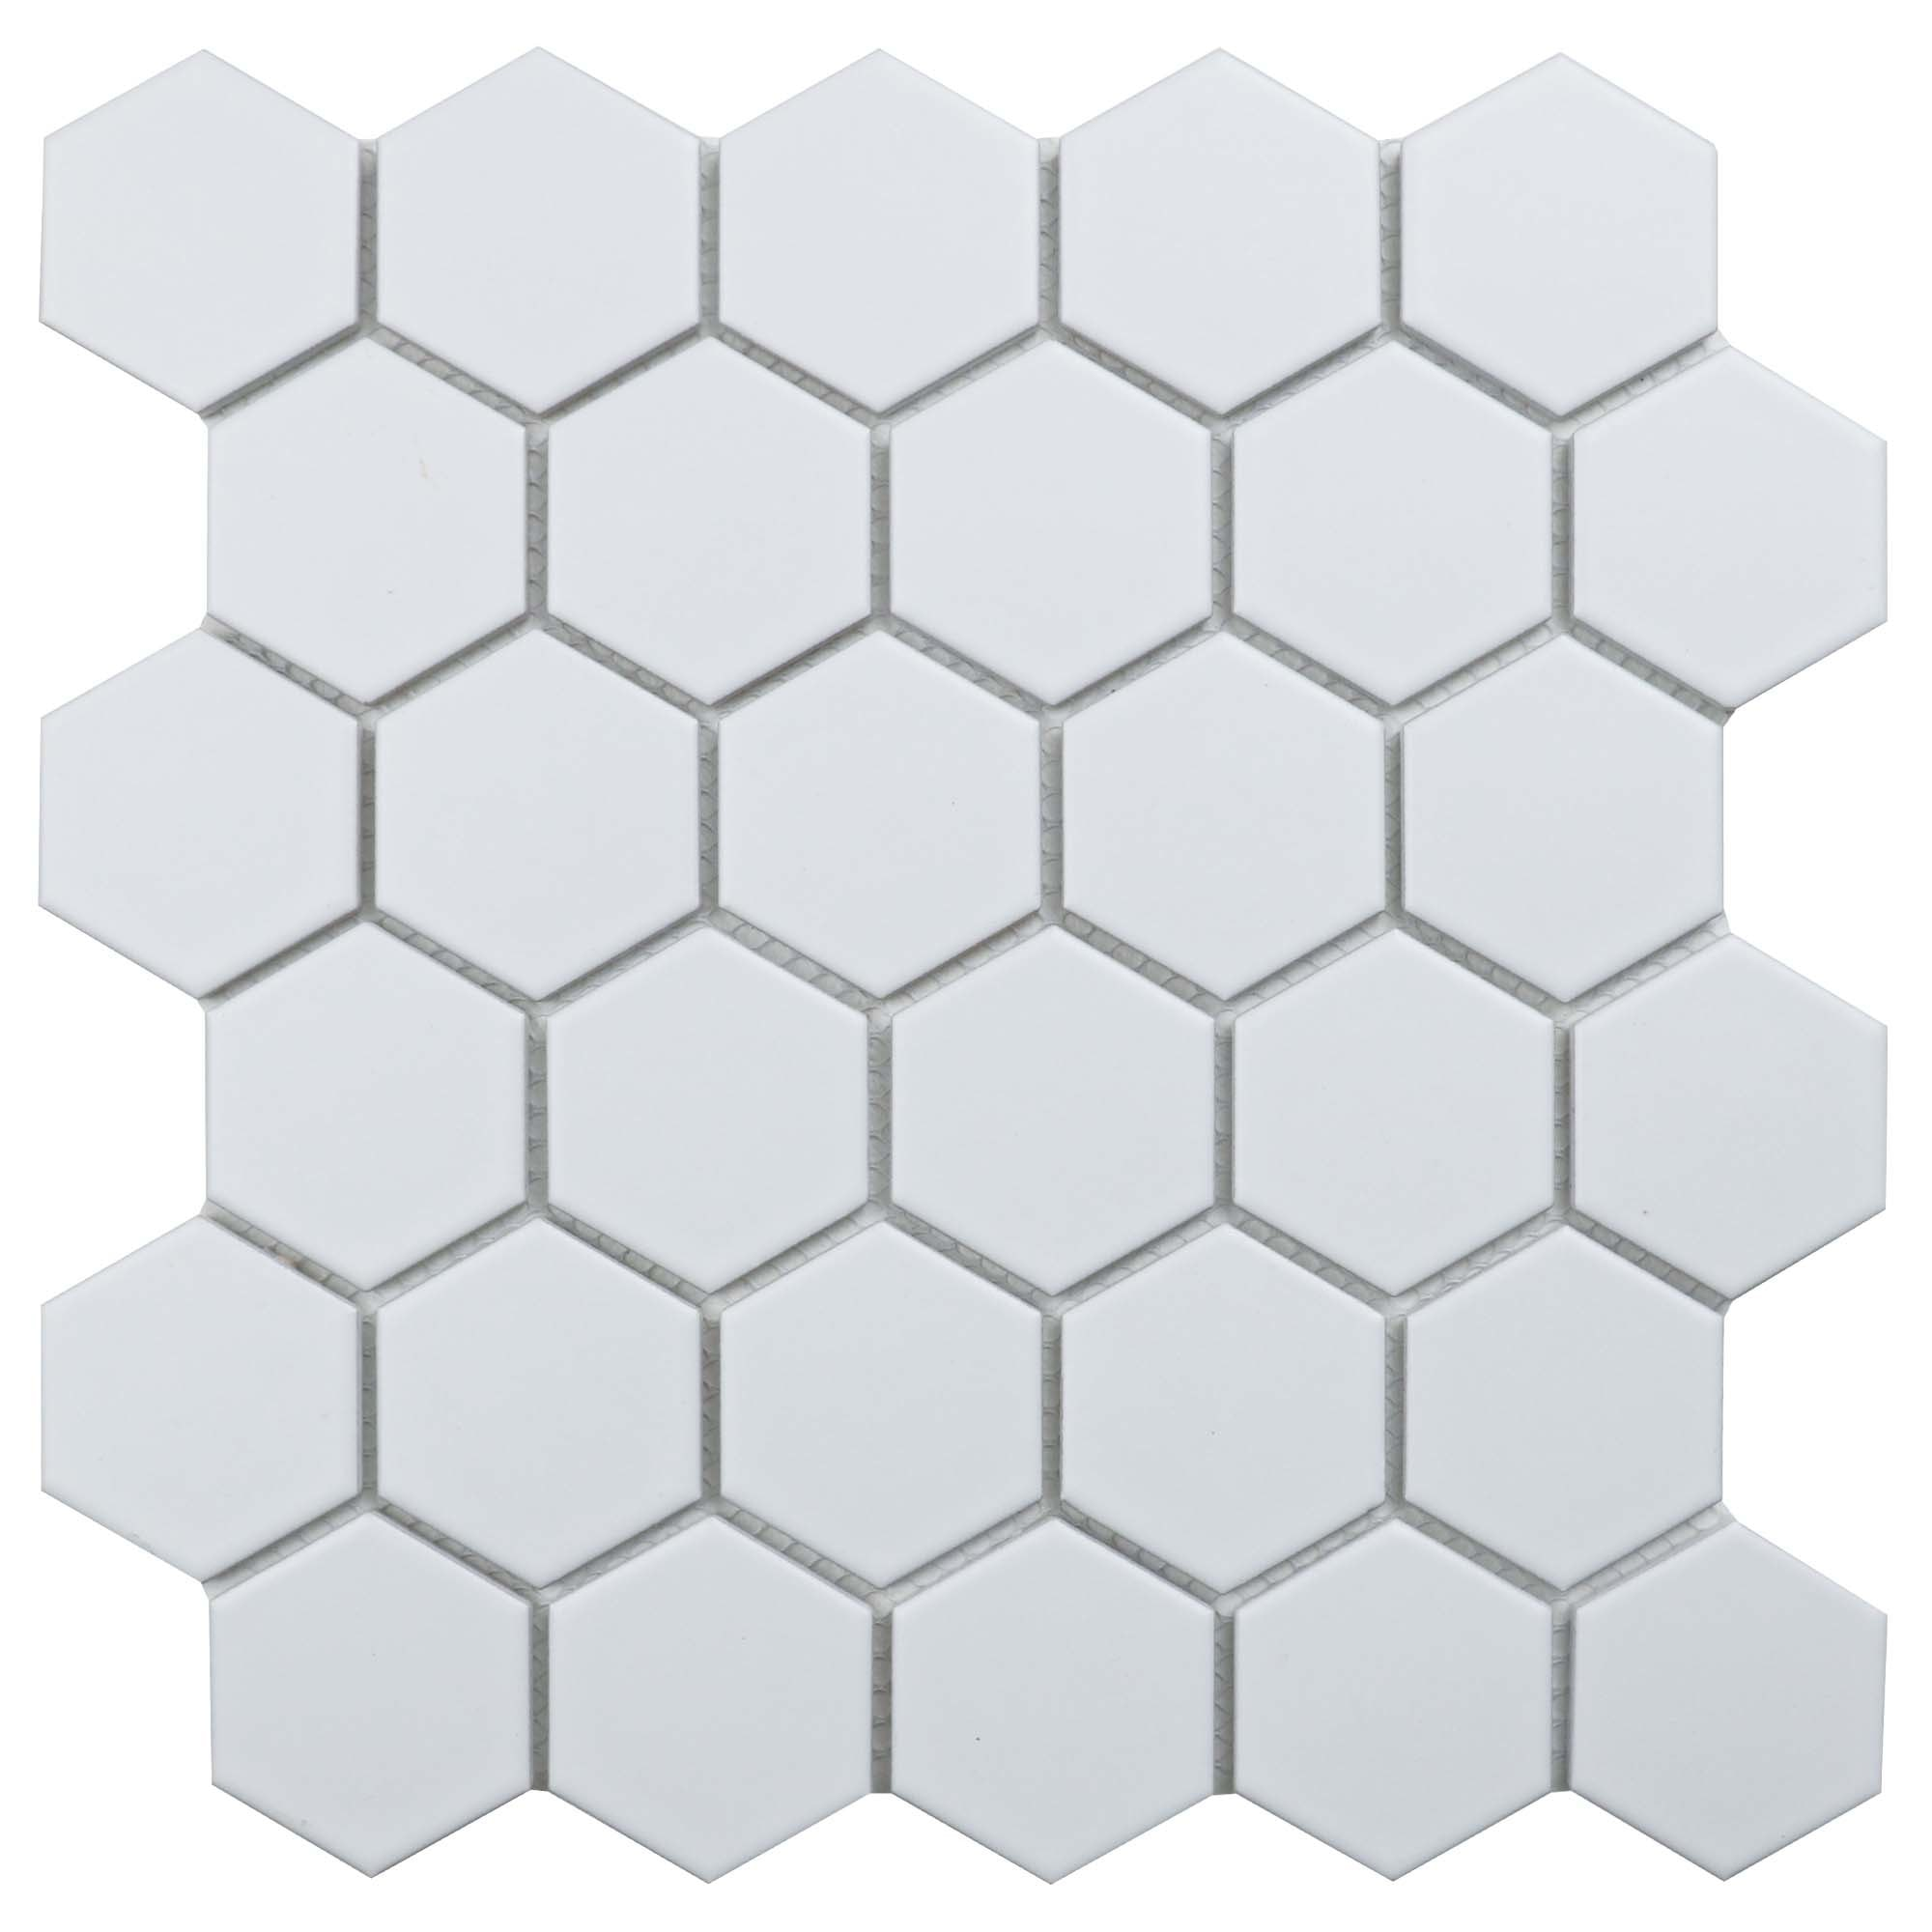 """11 x 10.5 x 0.24 inches / Matte Retro 2"""" Hexagon Porcelain Matte Floor and Wall Tile in White 0"""